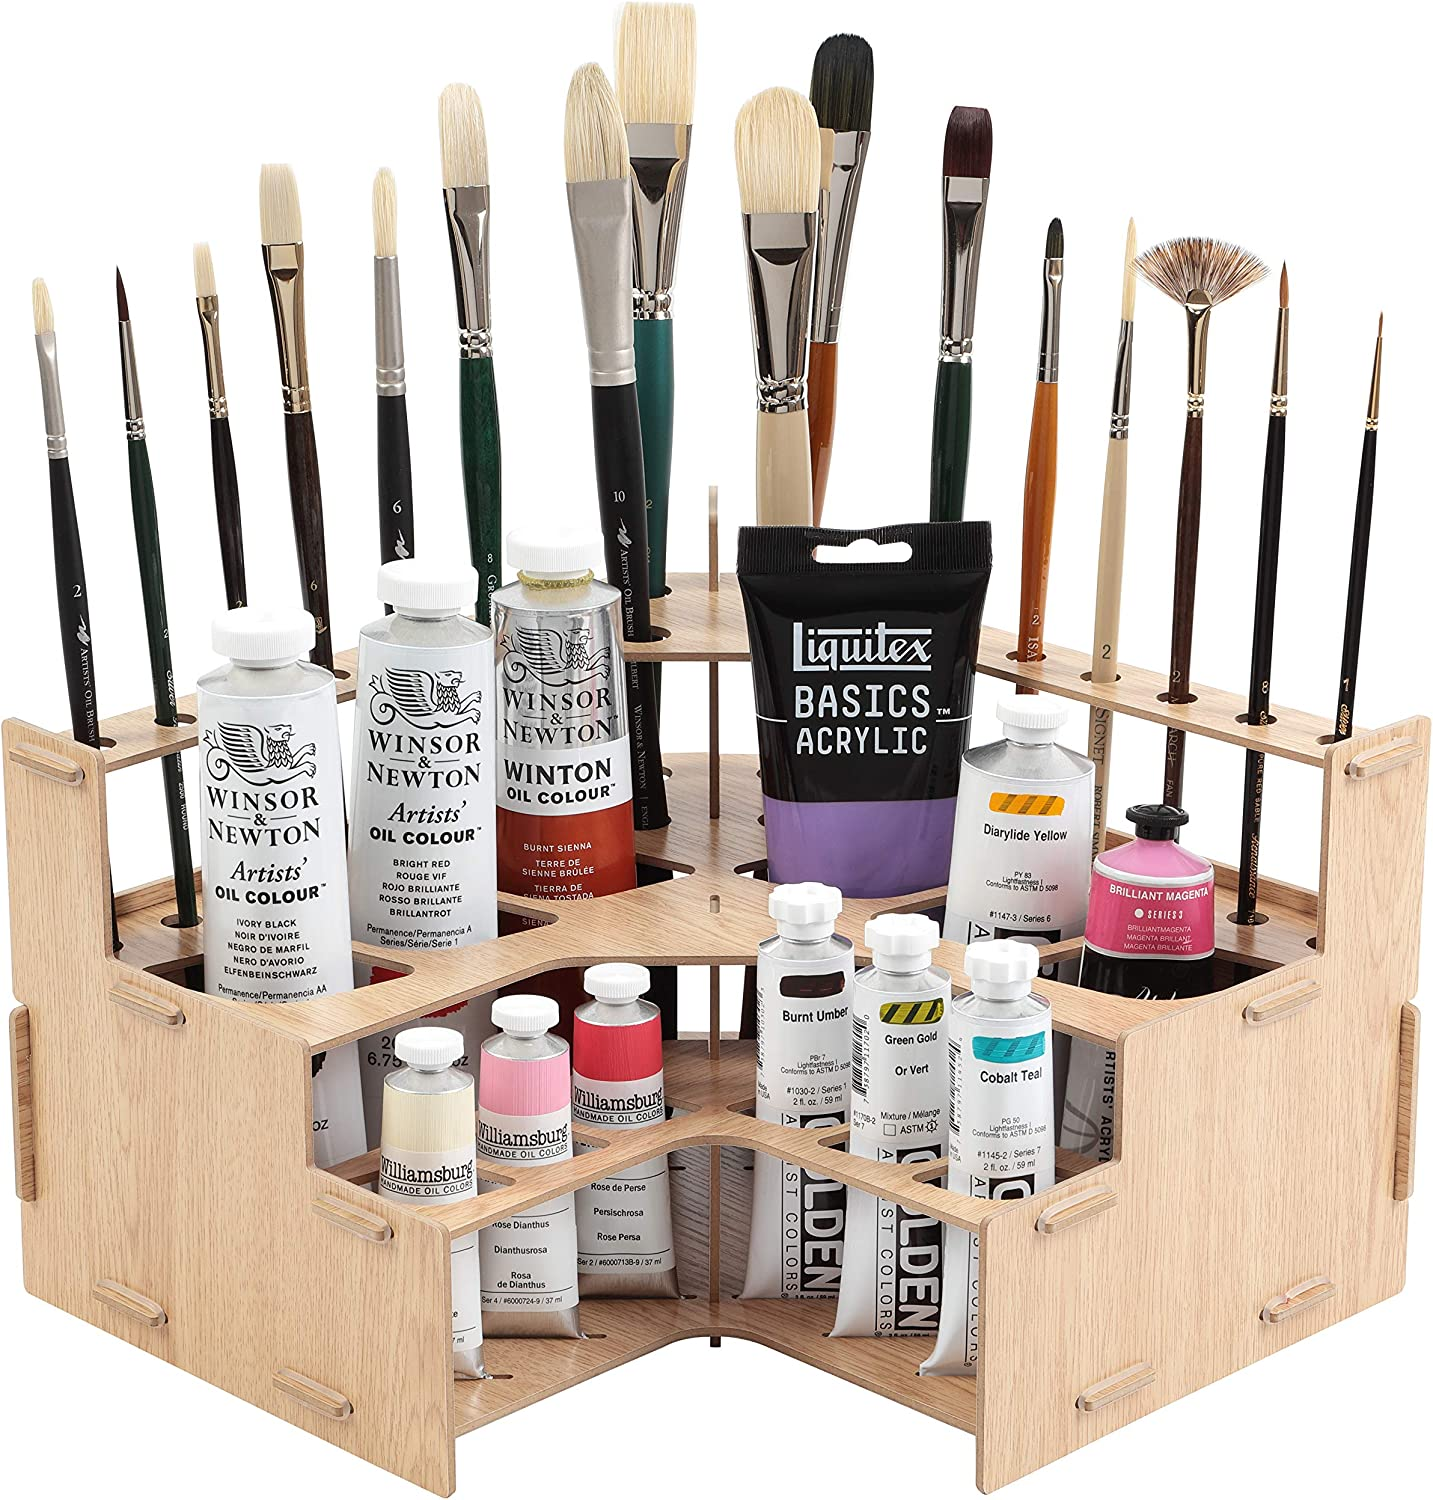 #001 Mezzo Artist Brush and Paint Tube Organizer Rack Multi-Layer Storage Display Stand for Paintbrushes Oil /& Acrylic Paints Wood-Grain Laminate